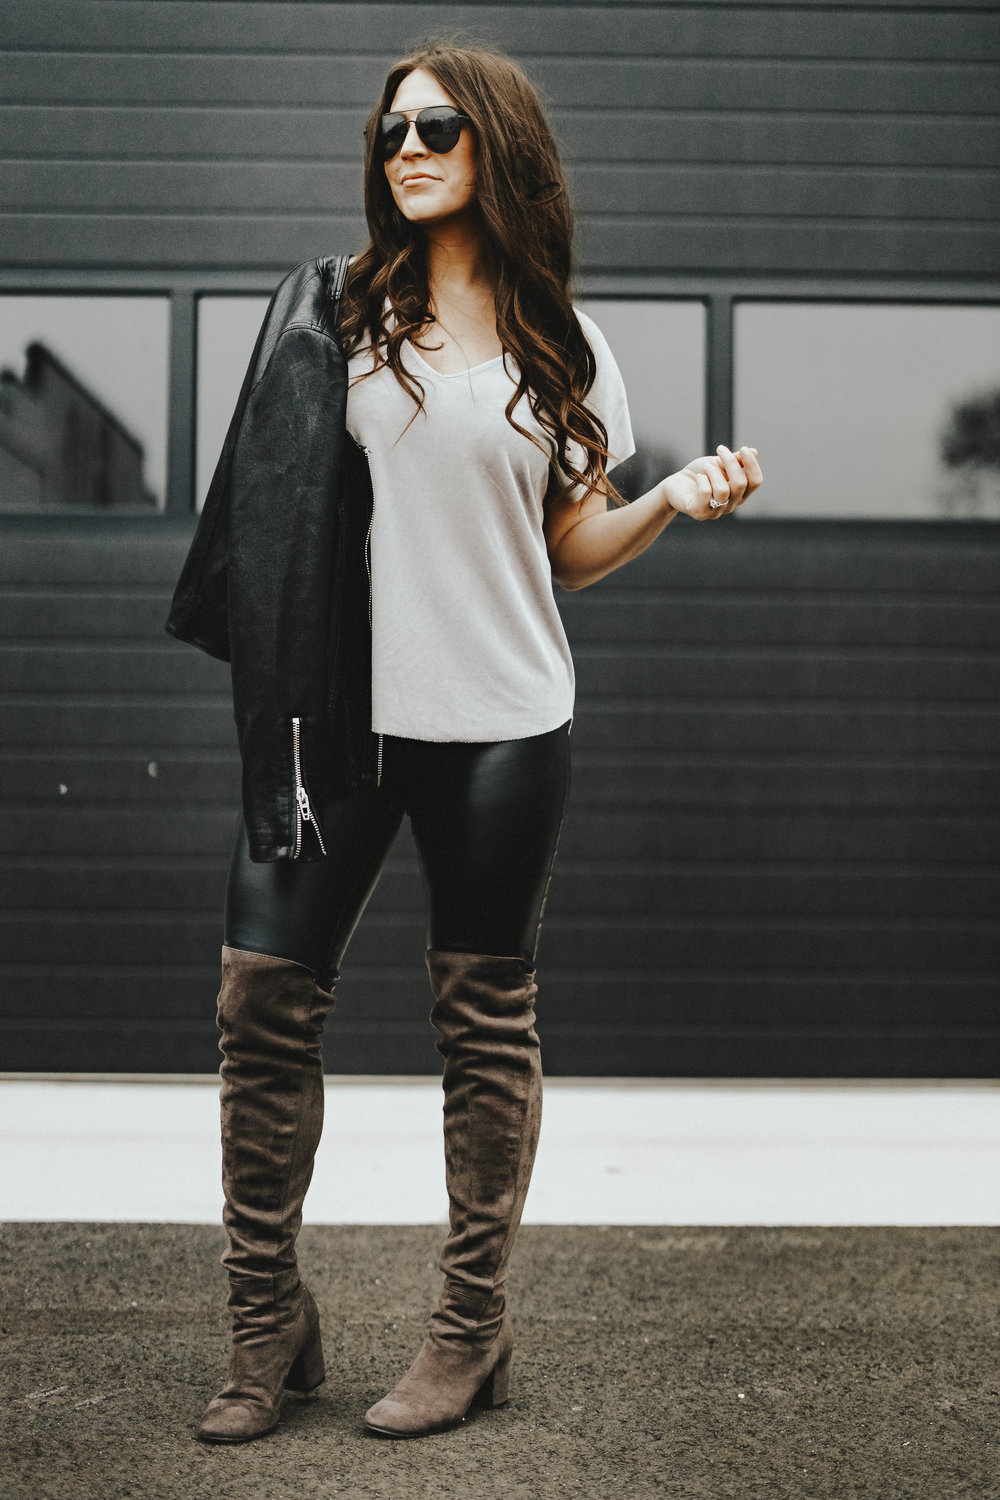 How to Style a Velvet Top for the Holidays | Pine Barren Beauty | gentle fawn velvet top, faux leather leggings, over the knee boots, holiday outfit idea, winter outfit idea